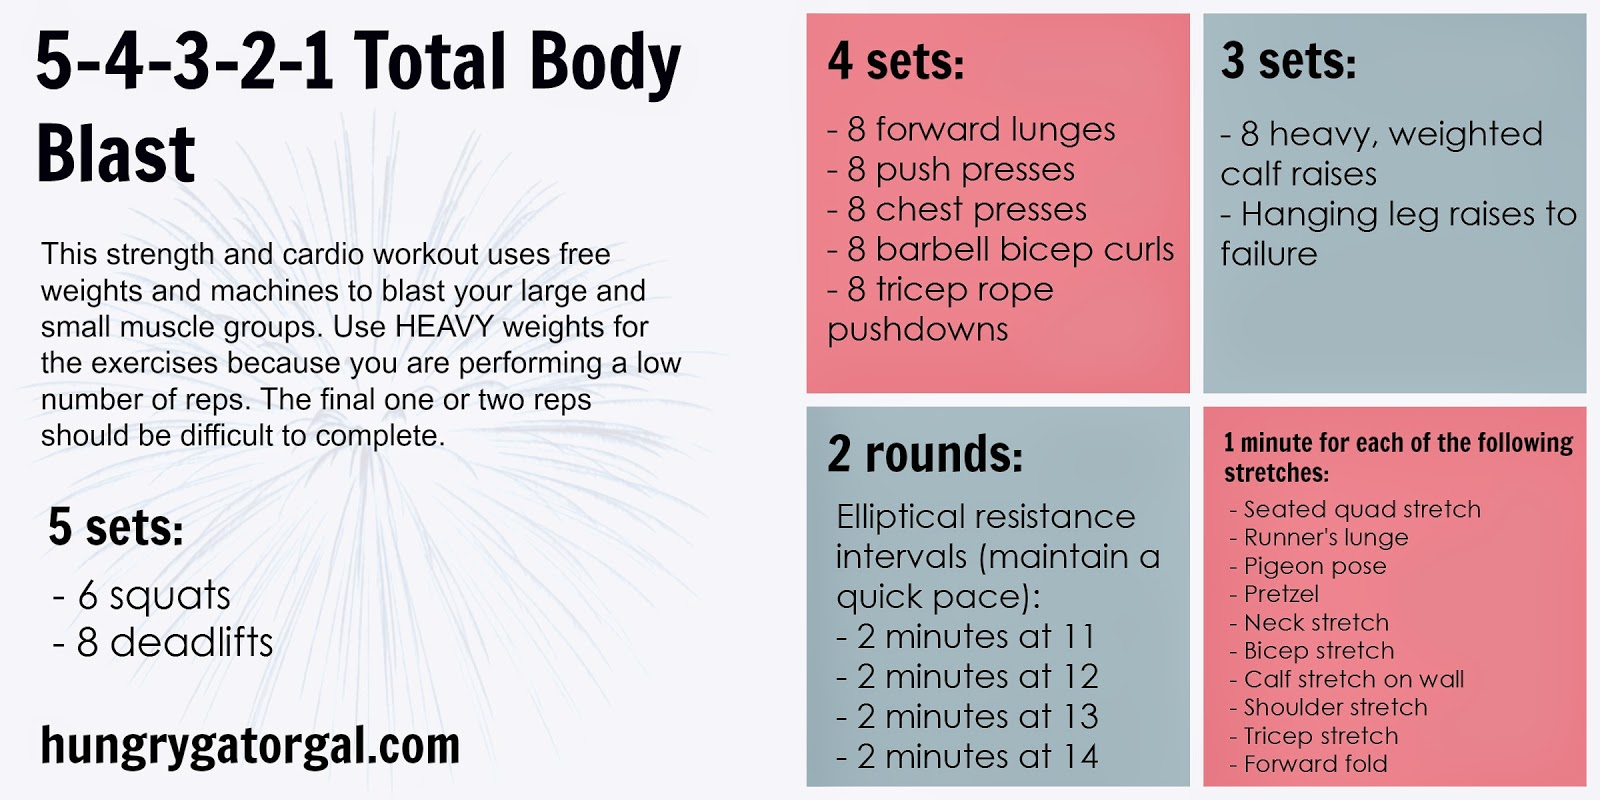 5-4-3-2-1 Total Body Blast Workout from Hungry Gator Gal (strength, cardio and stretching)